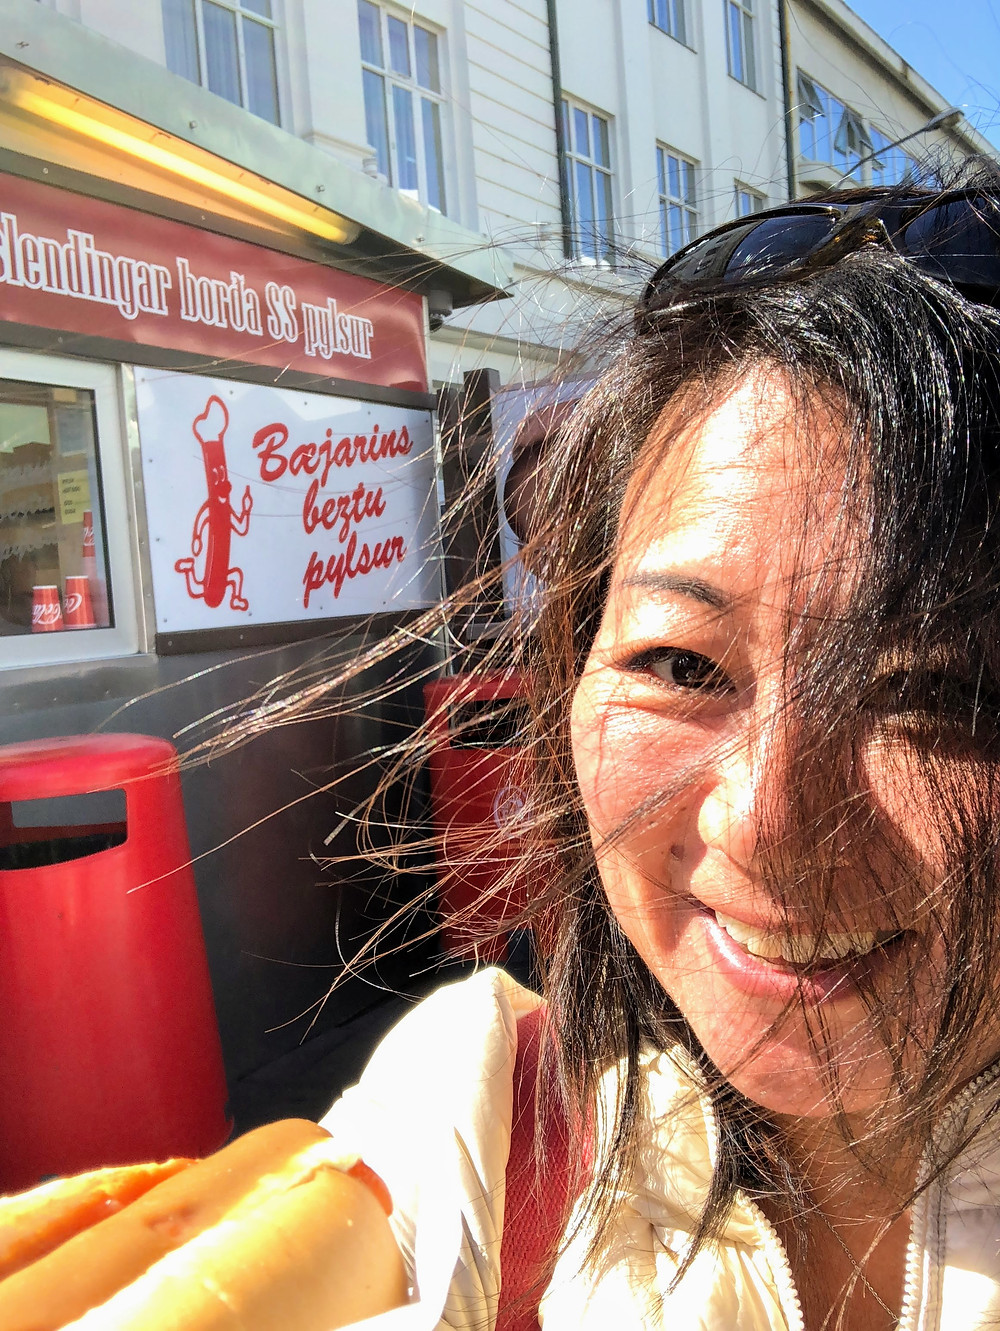 Asian female tourist holding Icelandic hot dog in front of famous stand in Reykjavik